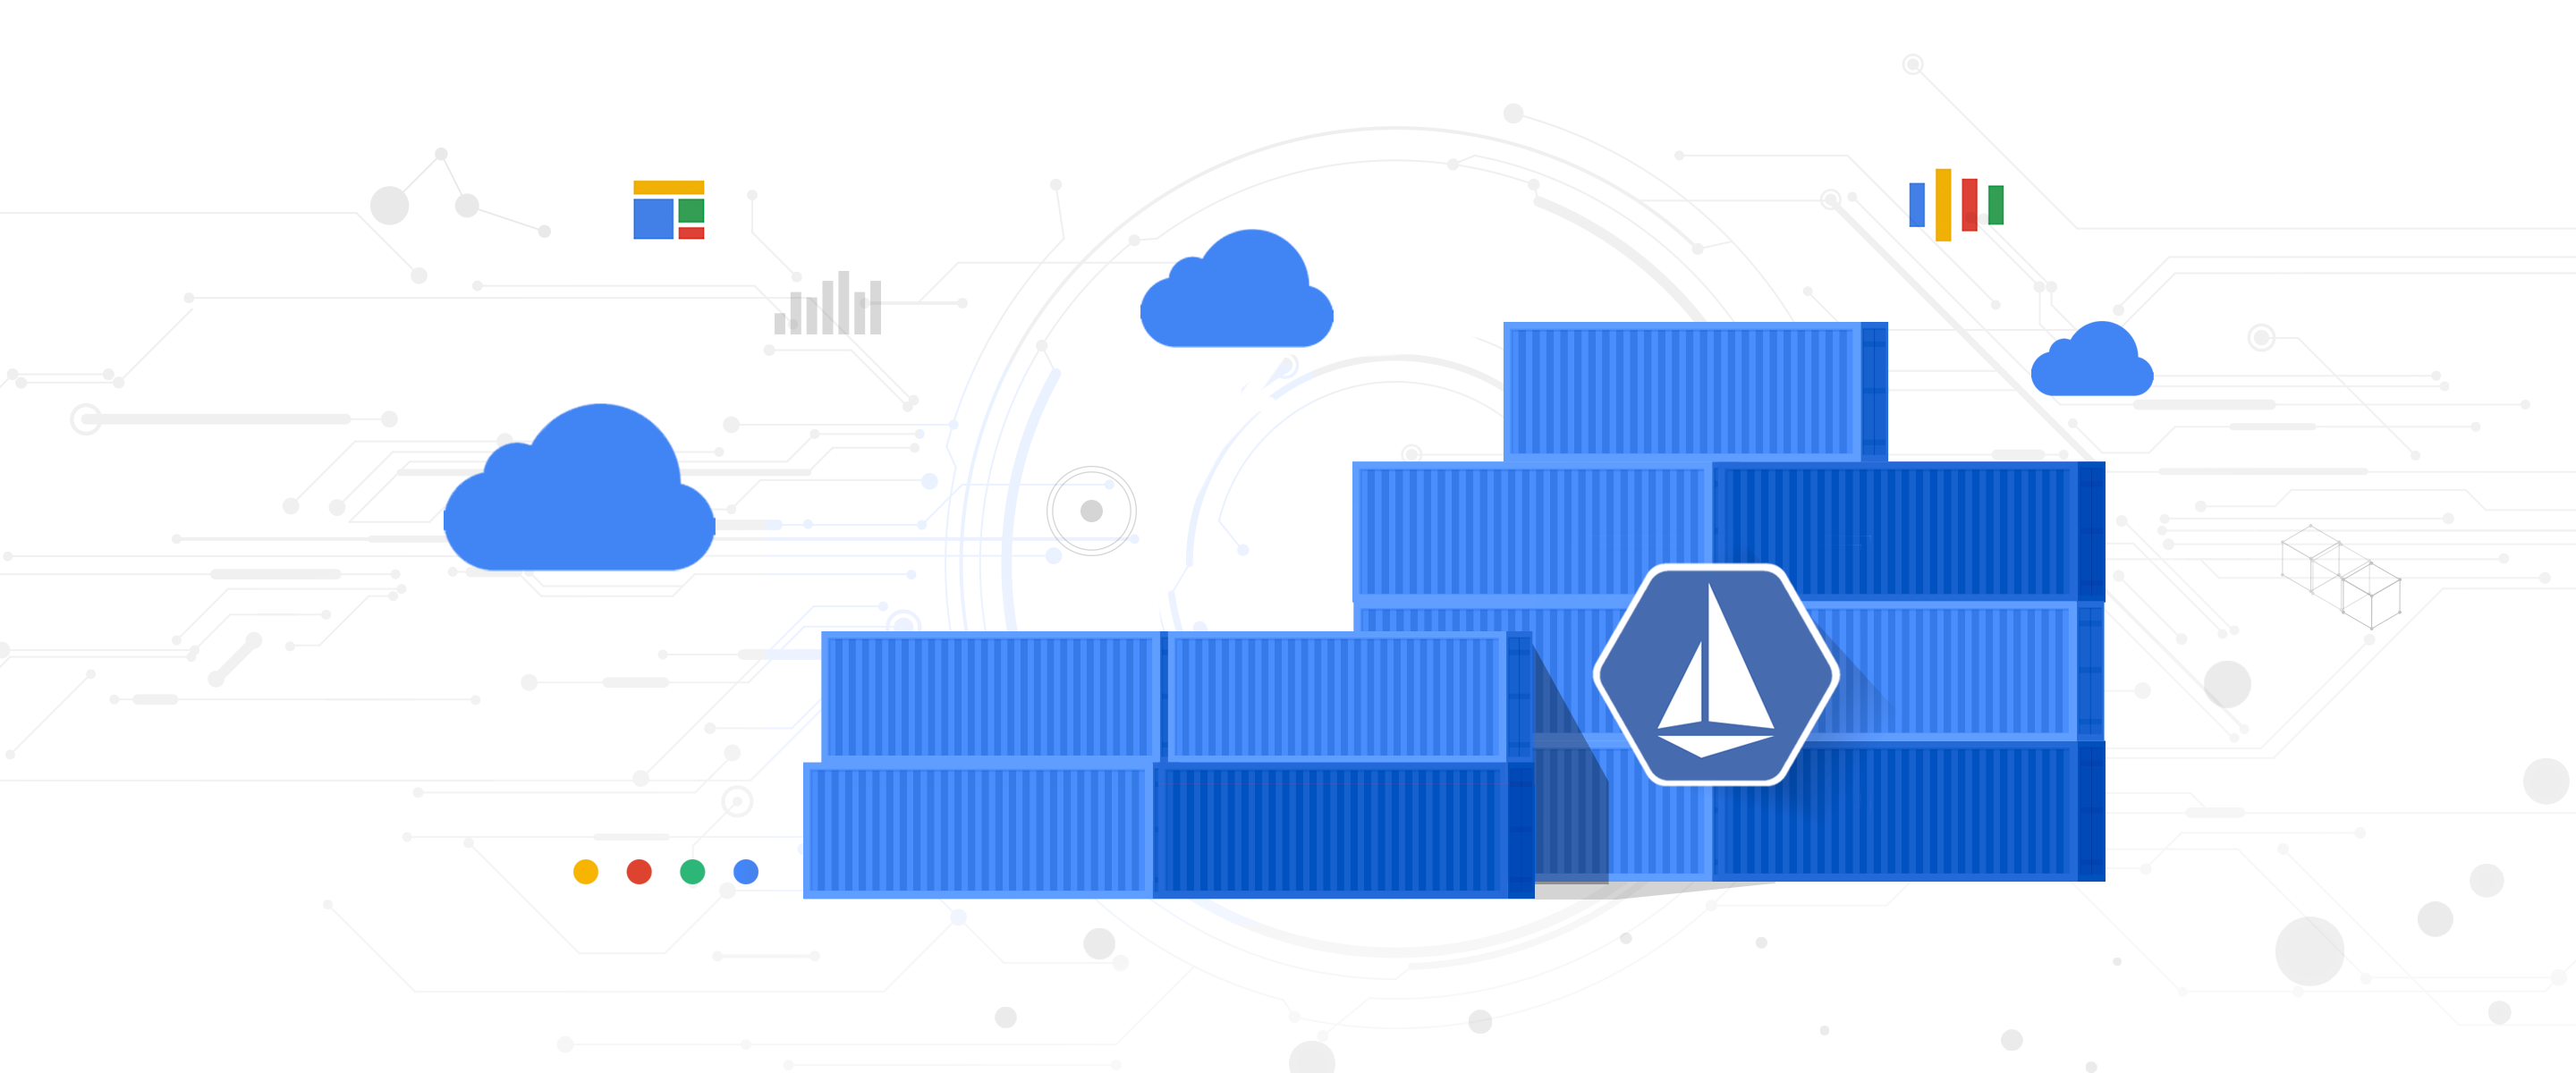 The service mesh era: Istio's role in the future of hybrid cloud